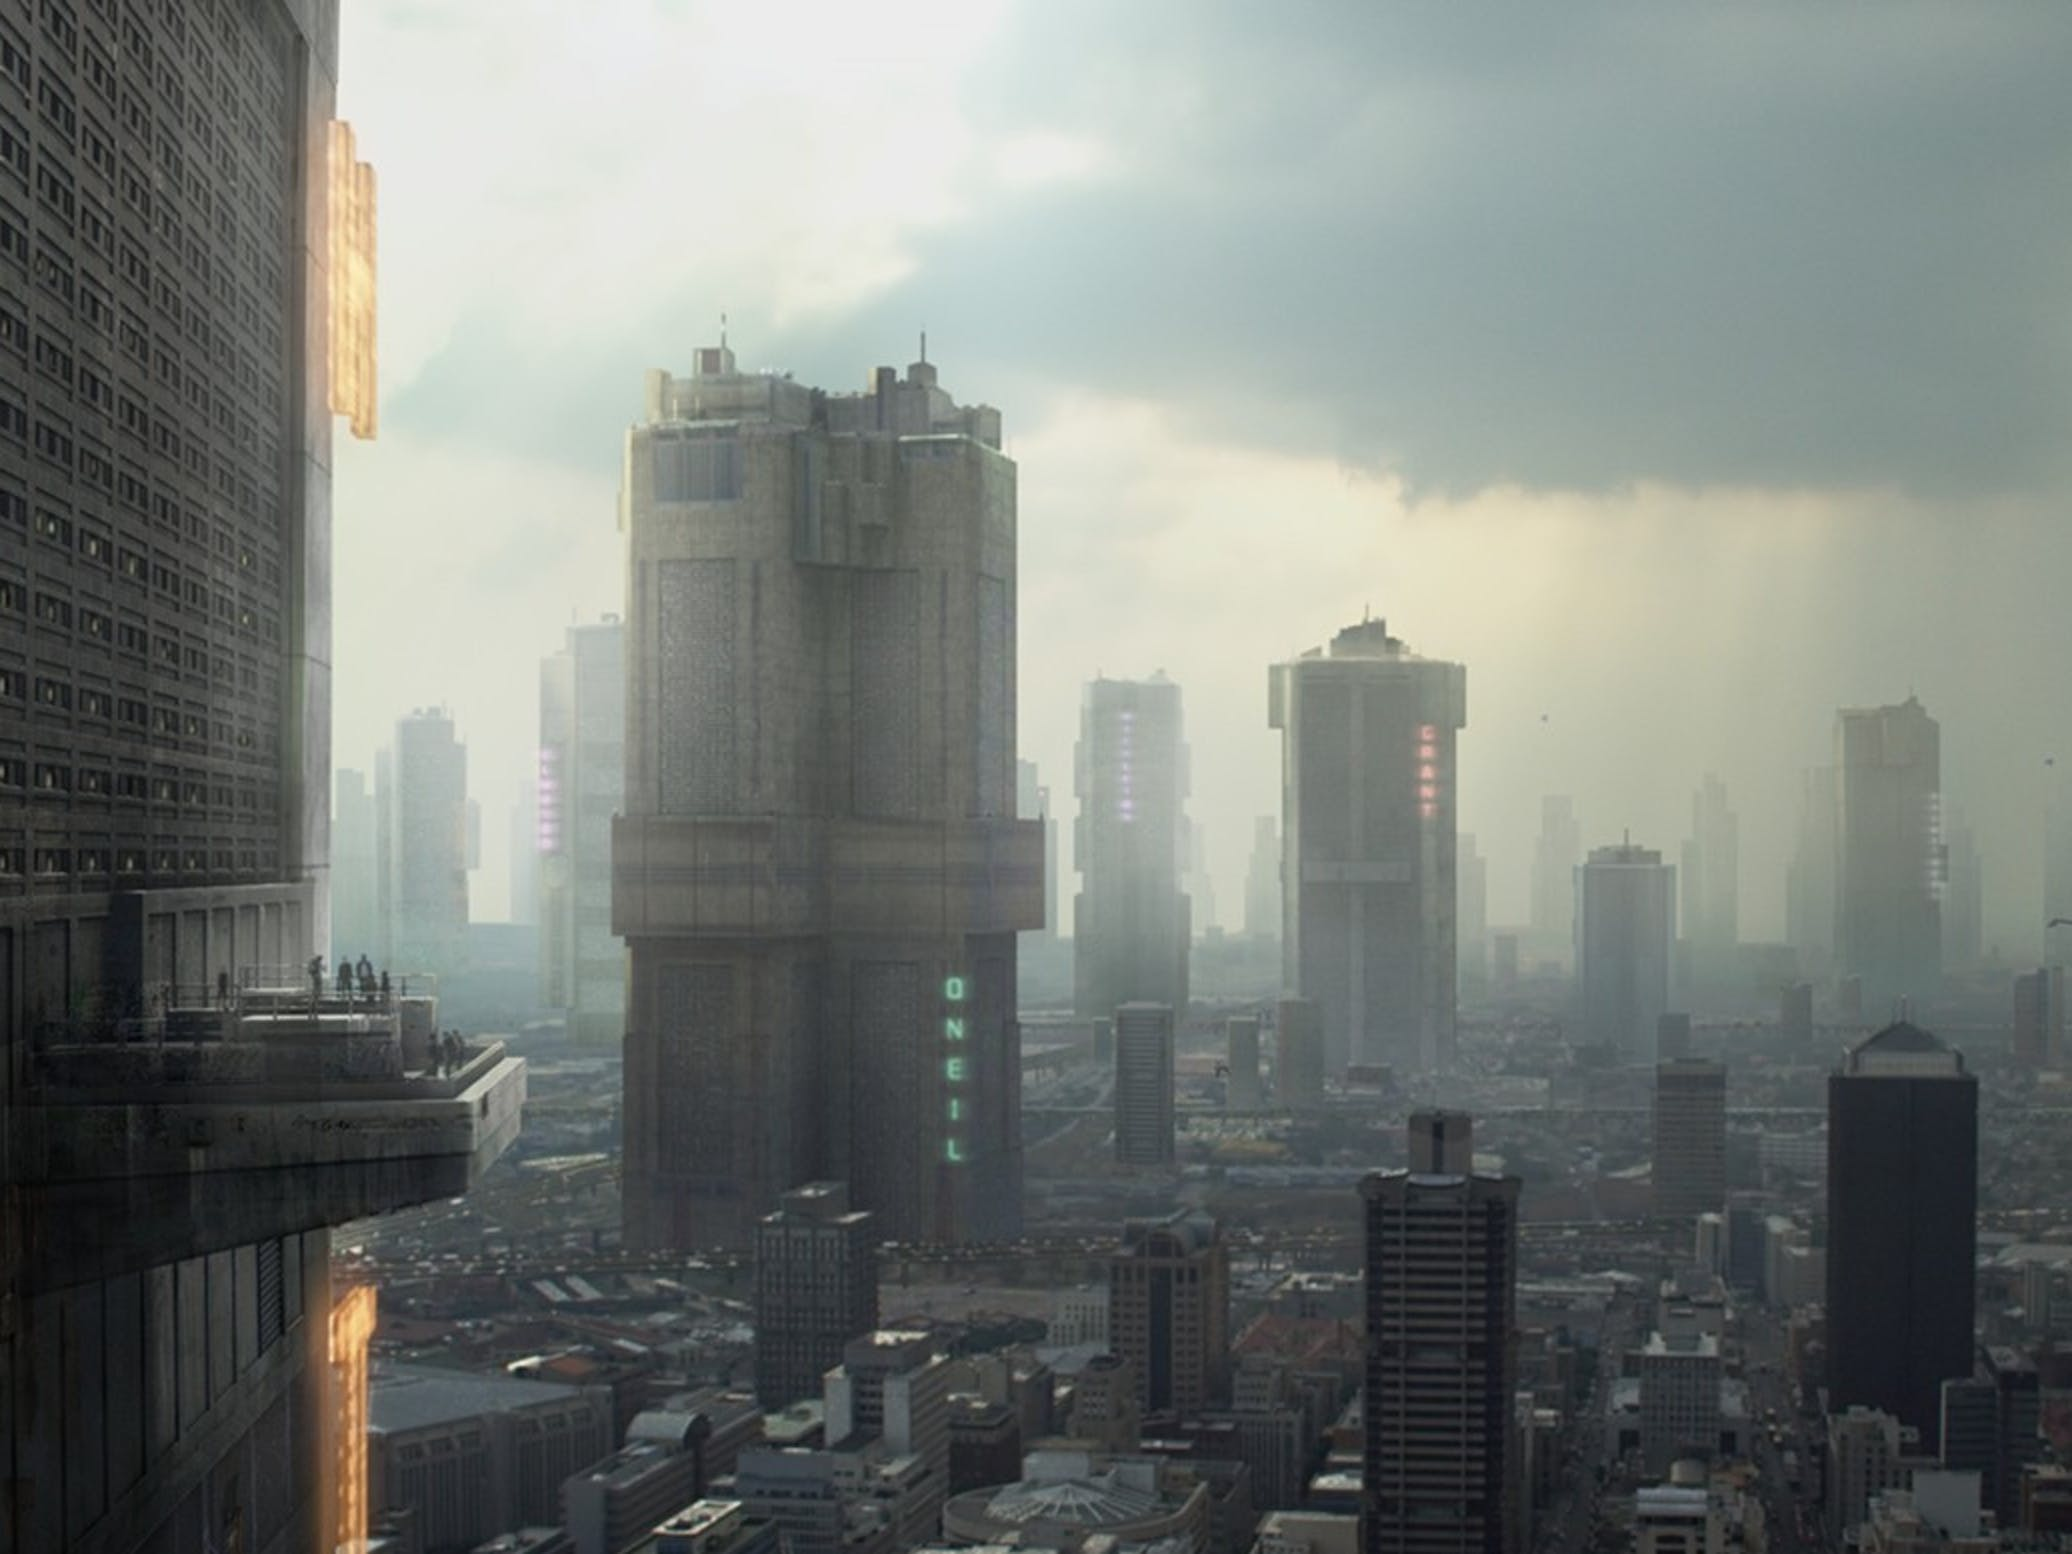 How Science Fiction Dystopias Became Blueprints for City